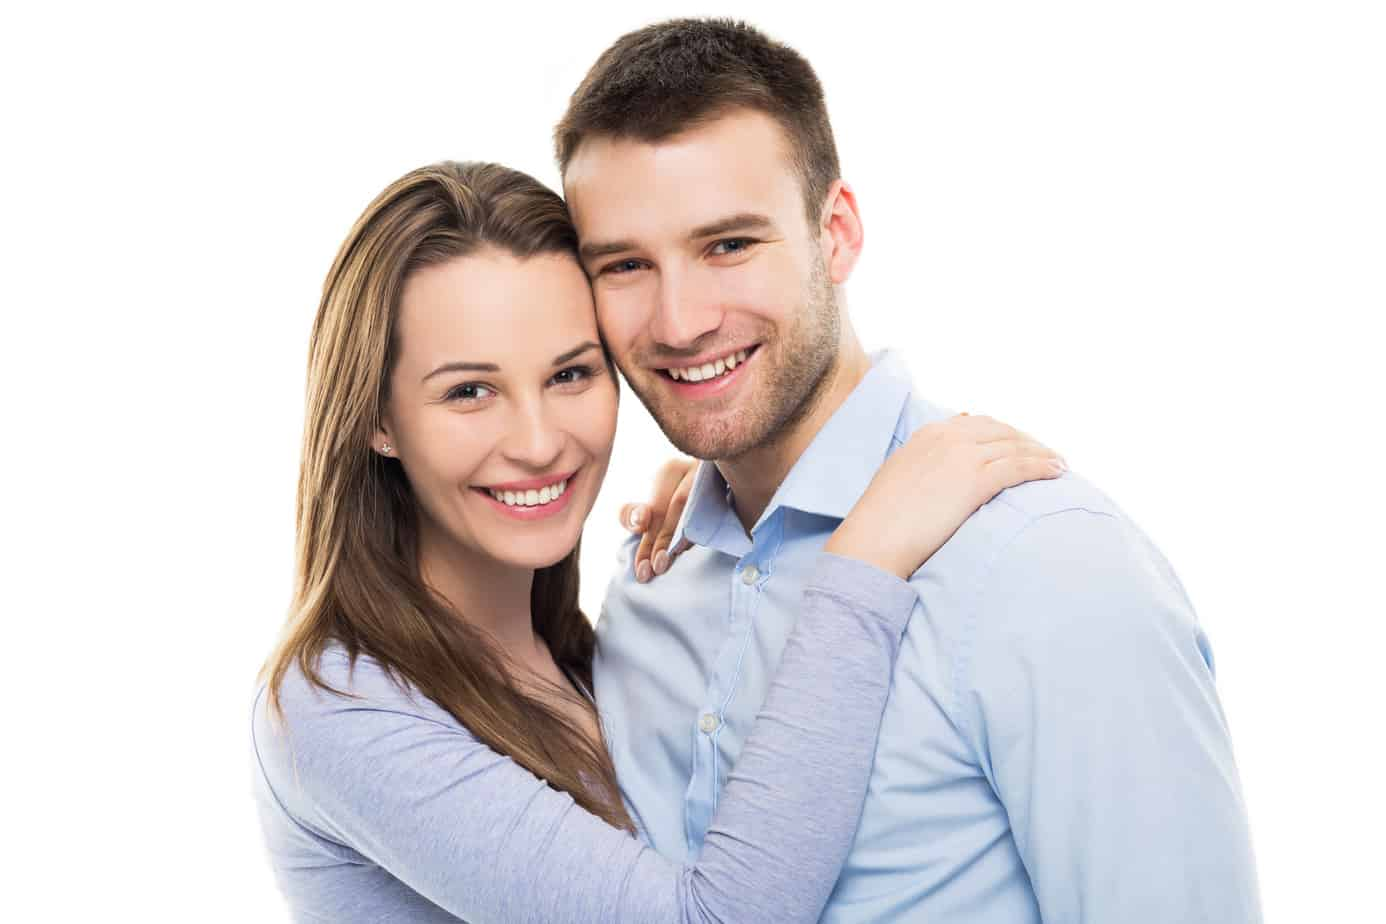 How To Reconnect With Your Spouse (8 Ways to Reignite The